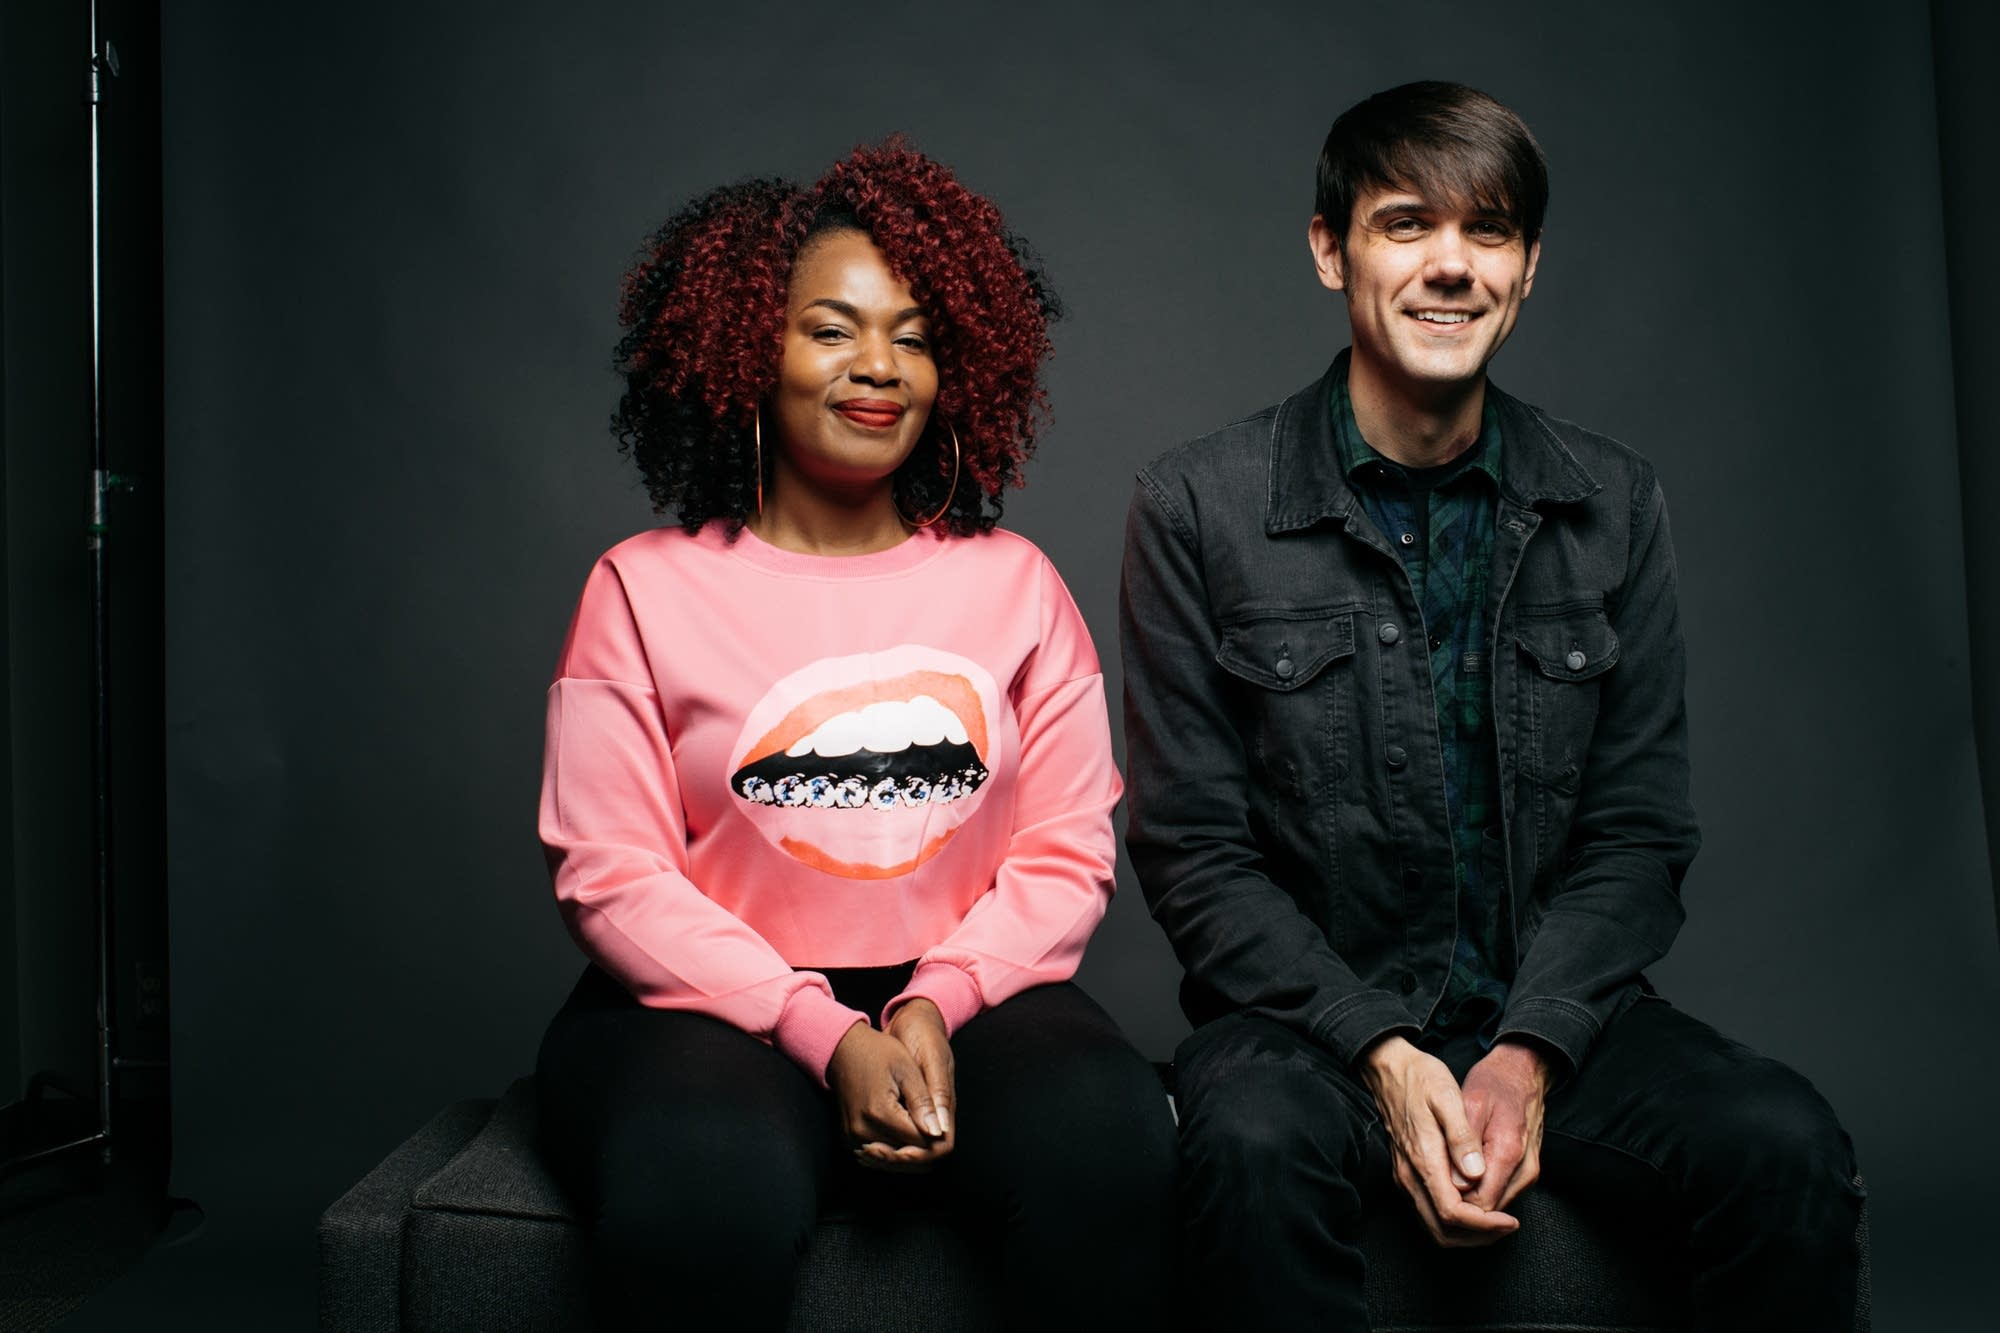 Meet the new voices on The Current: Sanni Brown and Eric